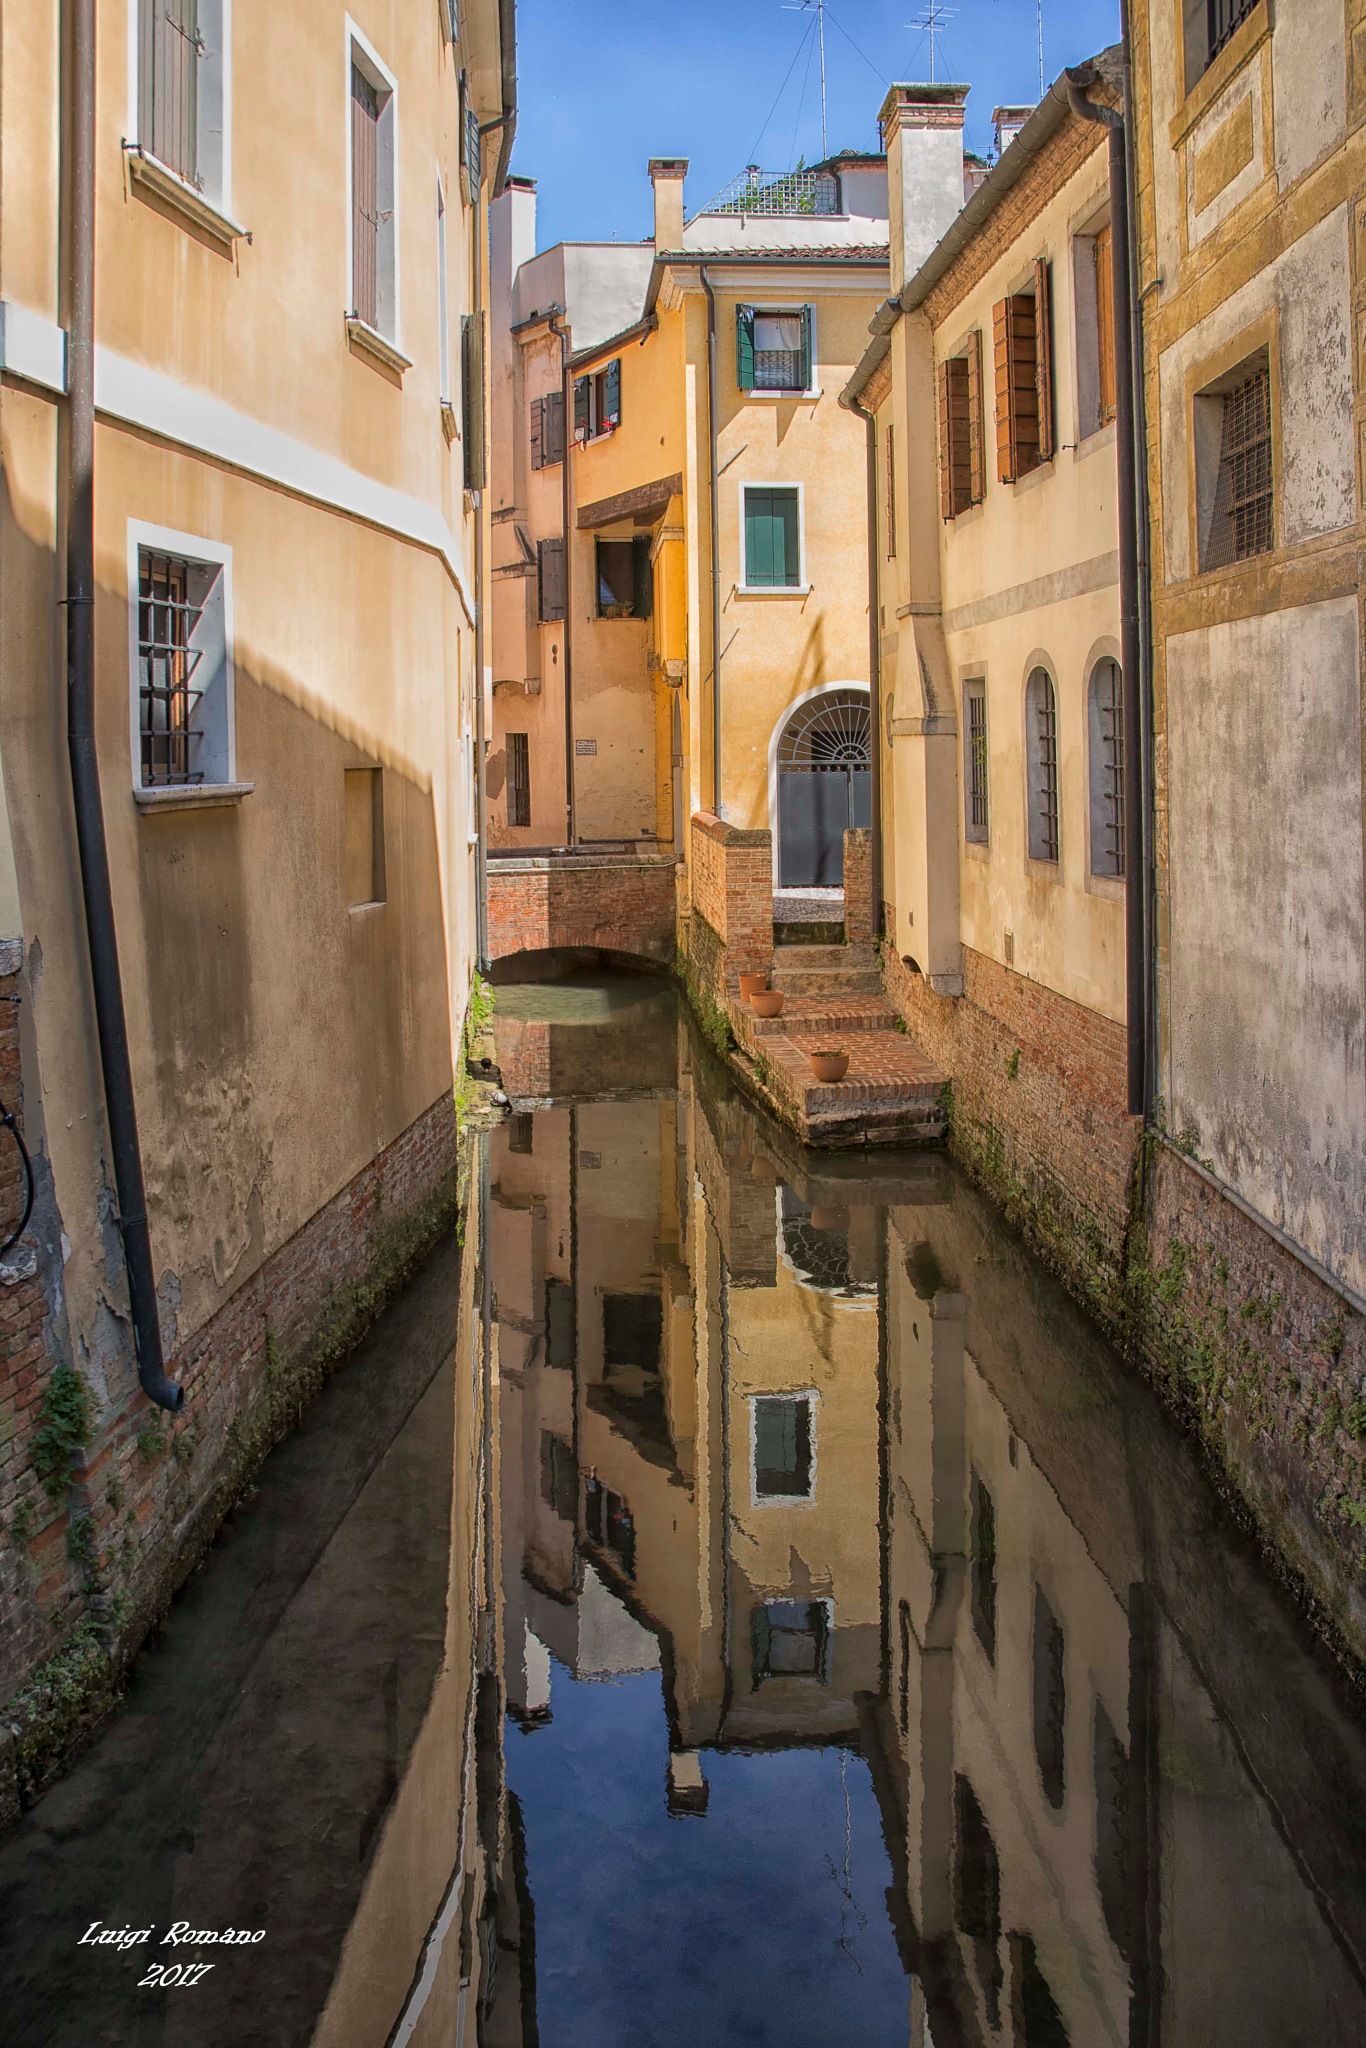 Reflections on the canal in Treviso by Luigi Romano